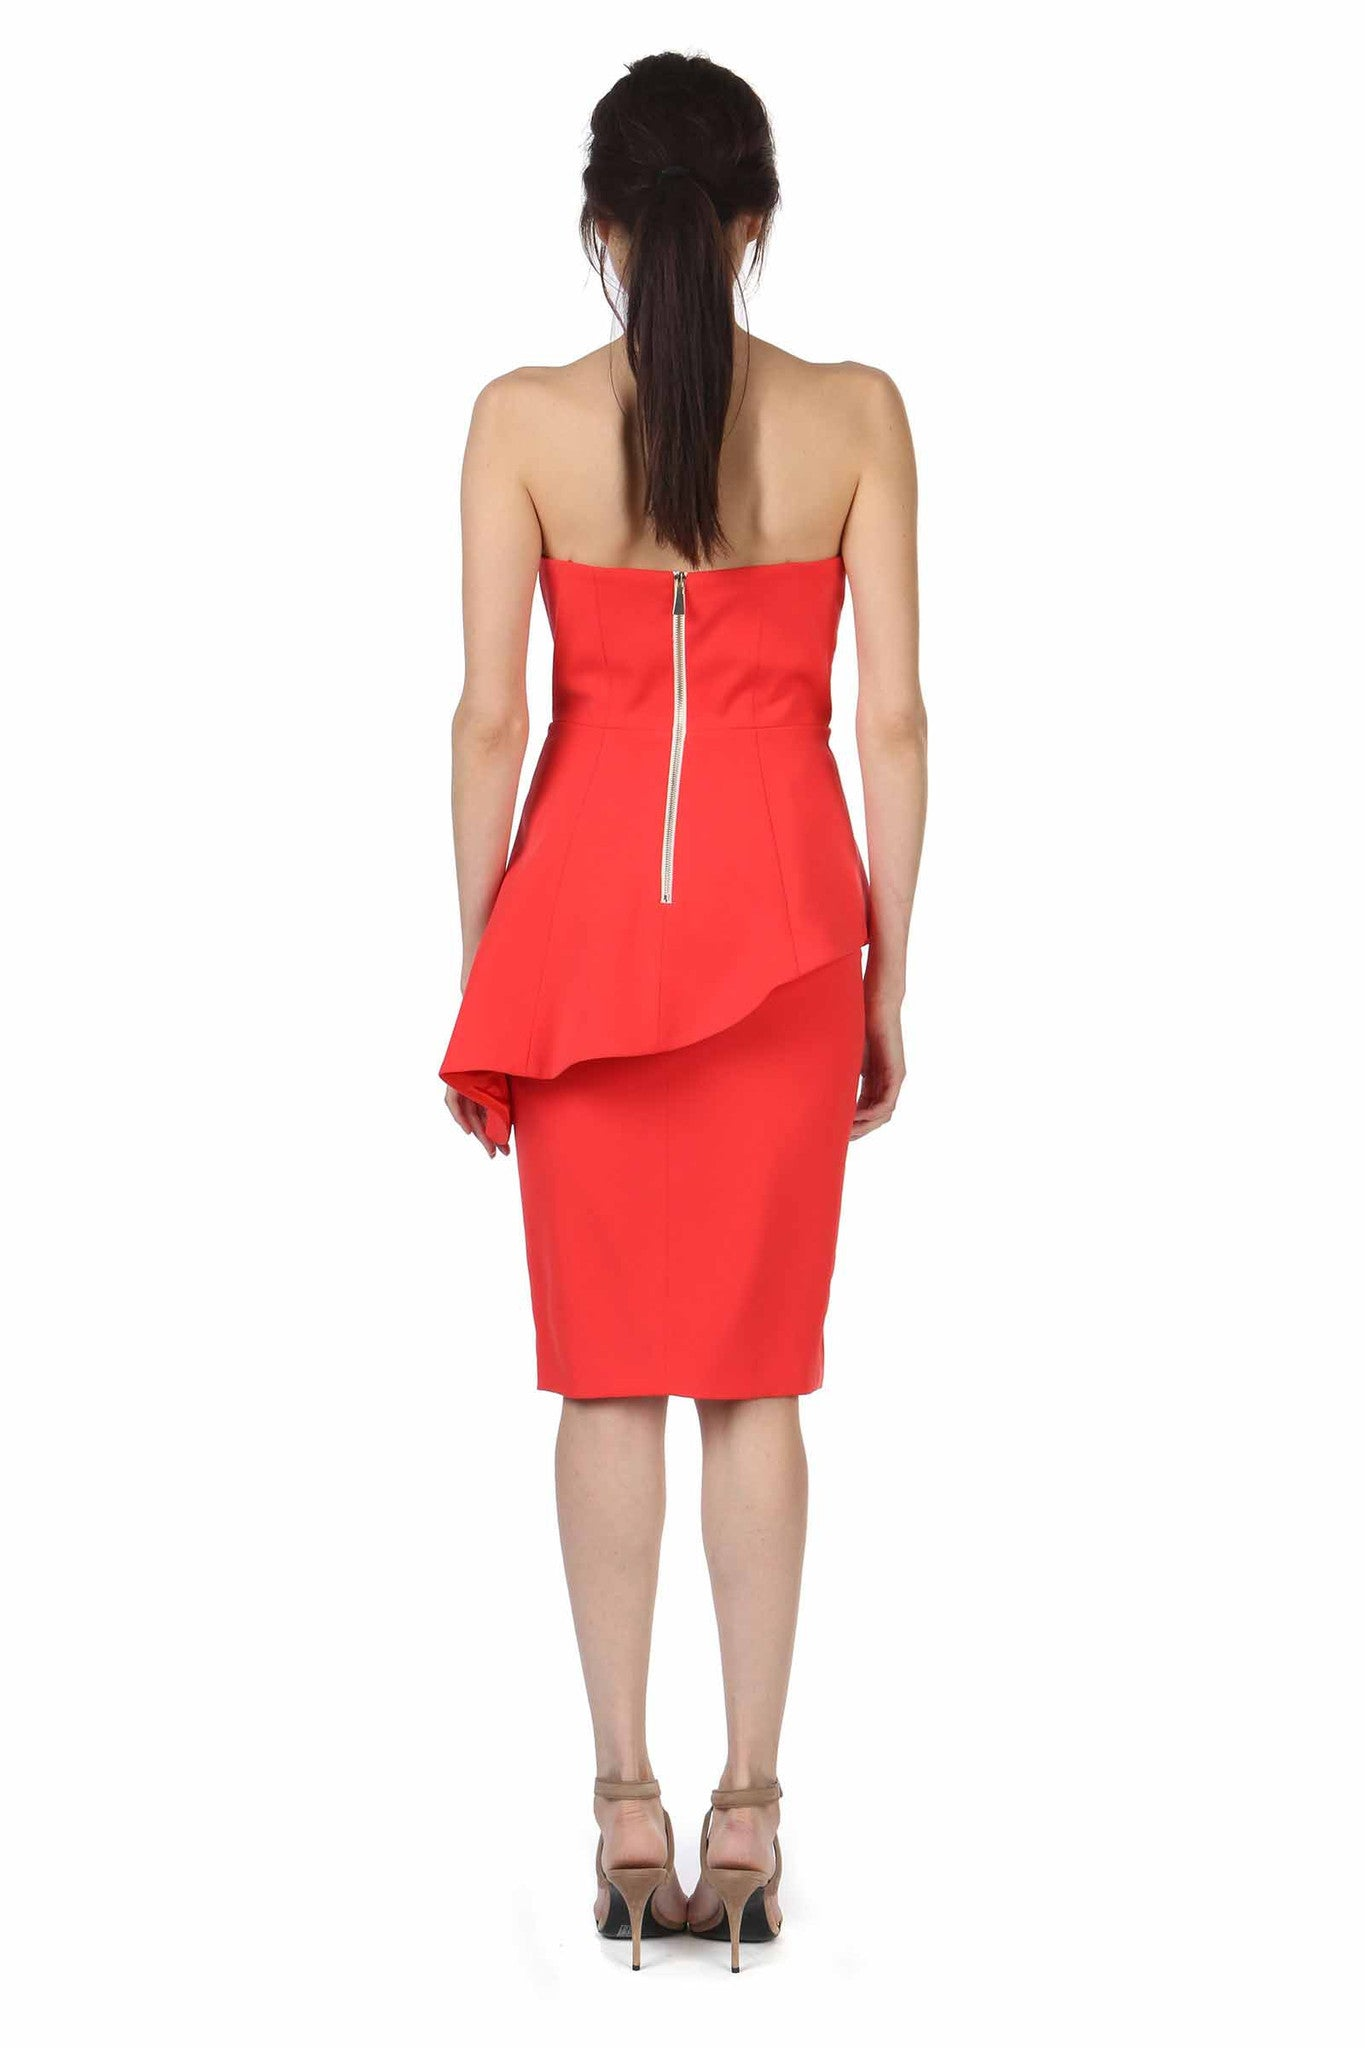 Jay Godfrey Red Strapless Peplum Dress - Back View